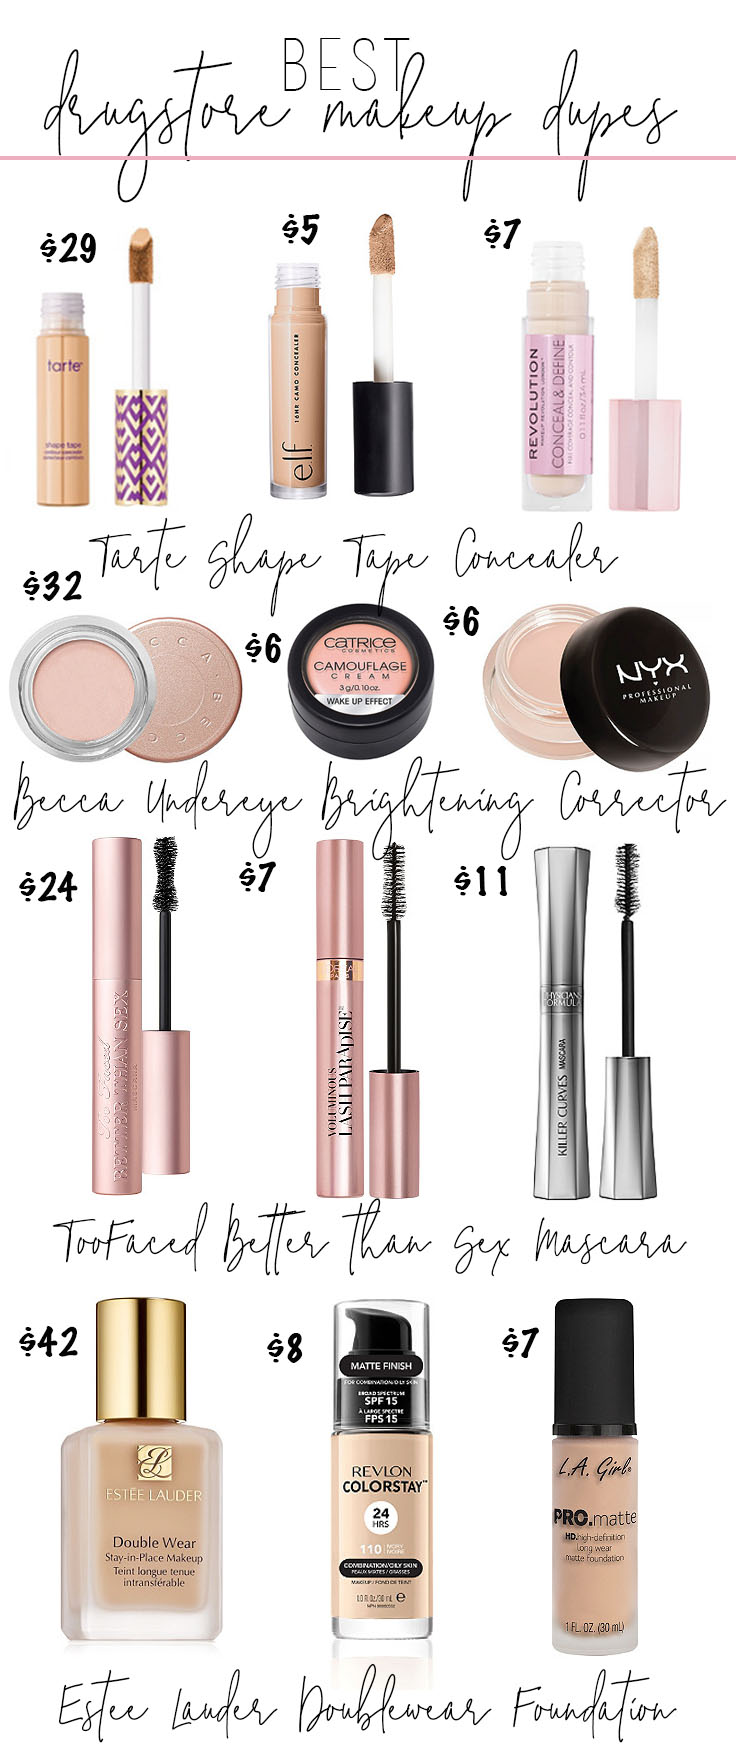 Best Makeup Dupes From The Drugstore Drugstore Makeup Dupes Stephanie Pernas